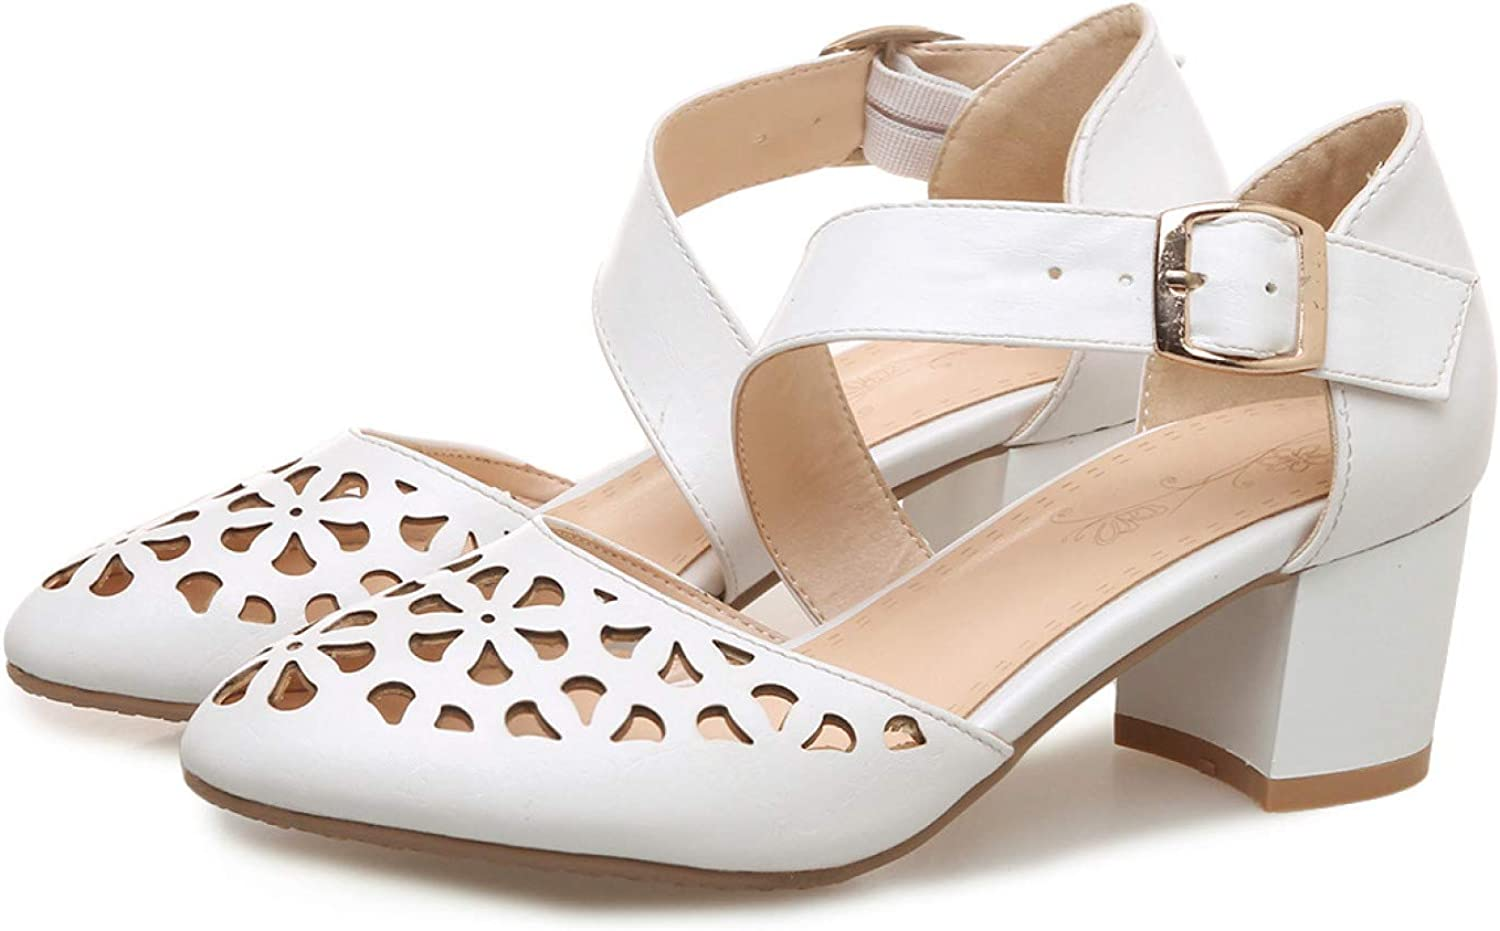 Women's Hollow Out Pointed Toe Sales results No. 1 Max 40% OFF Cross Strap Mid Chunky Heels Pump